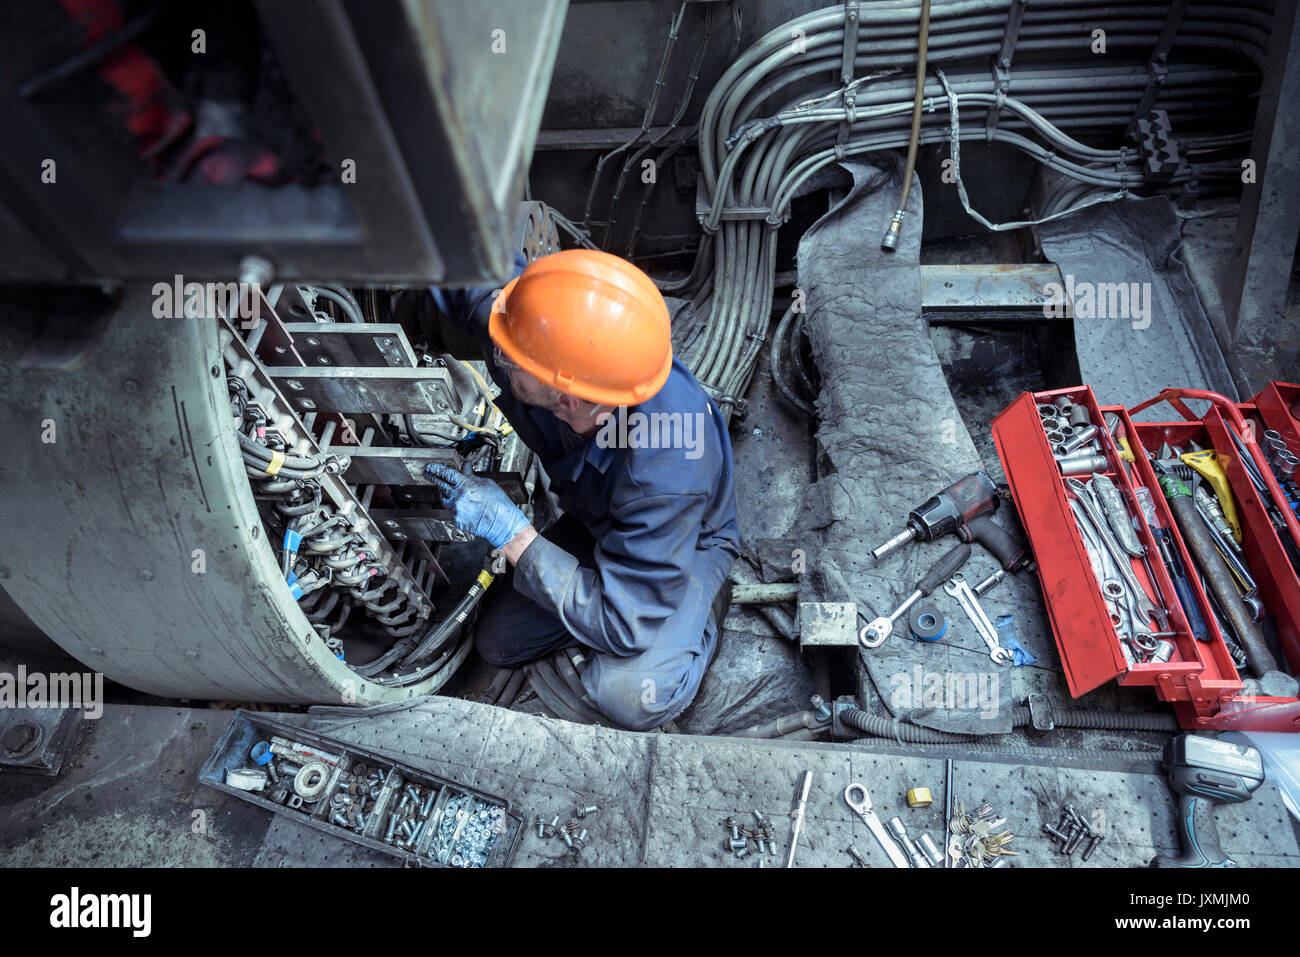 Locomotive engineer working on locomotive engine in train works Stock Photo